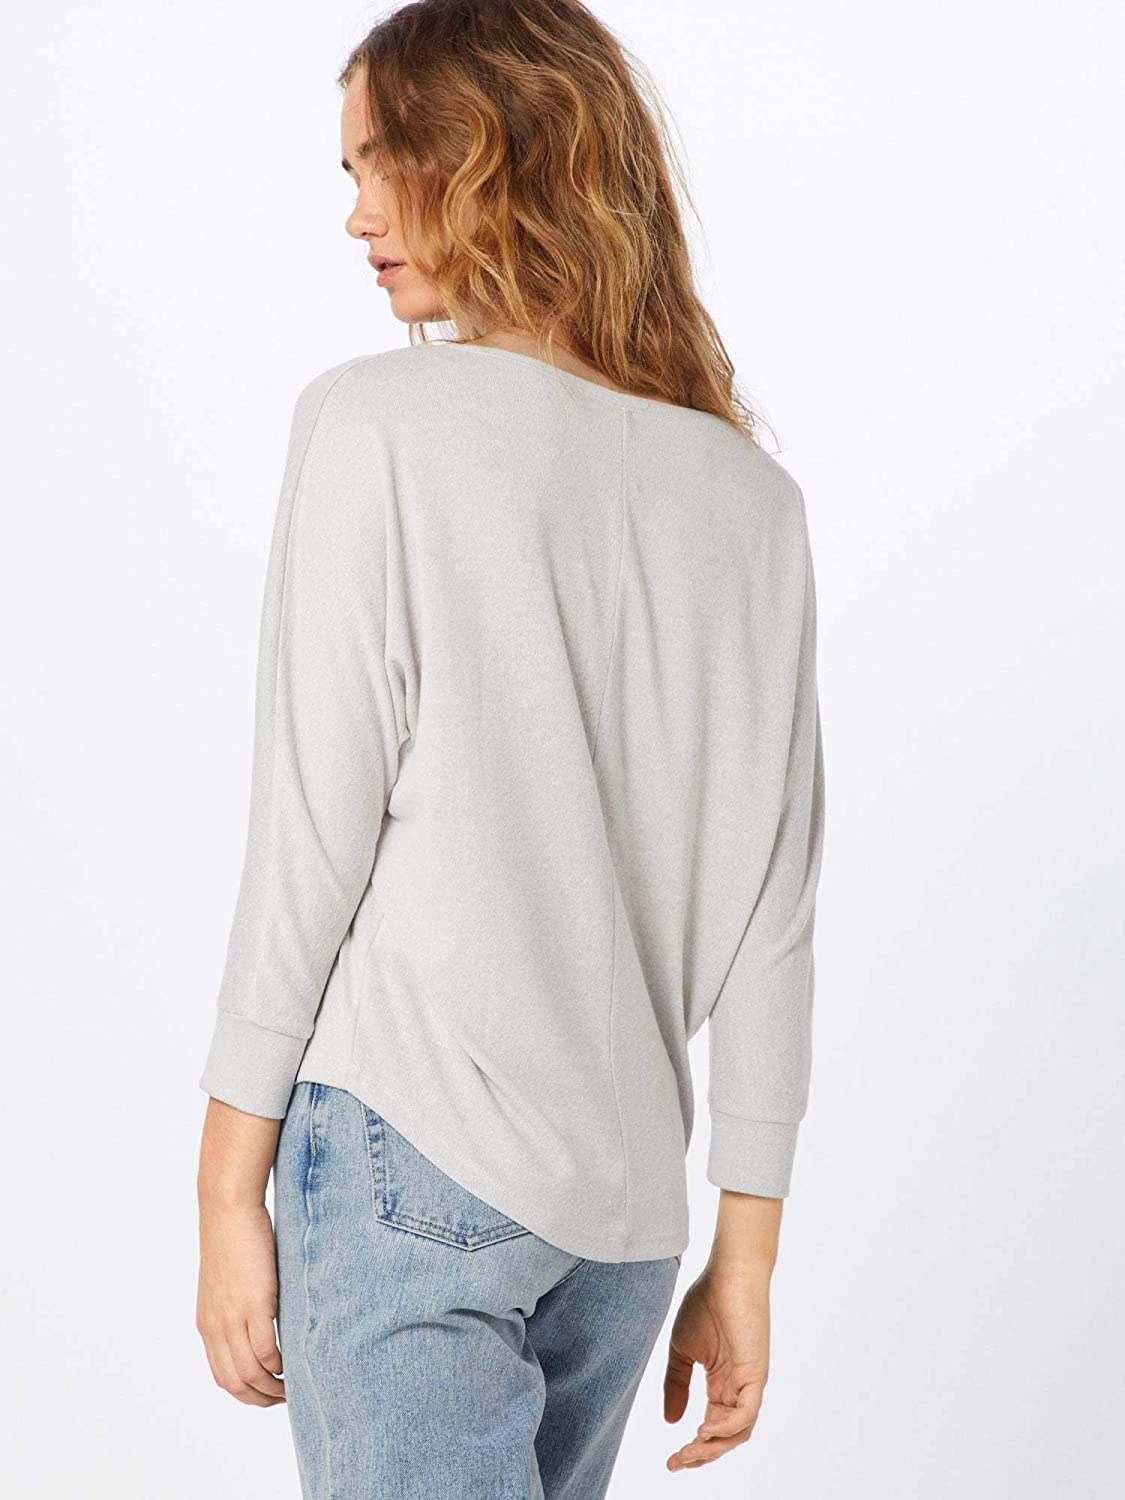 KEY LARGO Damen Sweatshirt Offwhite 42 20